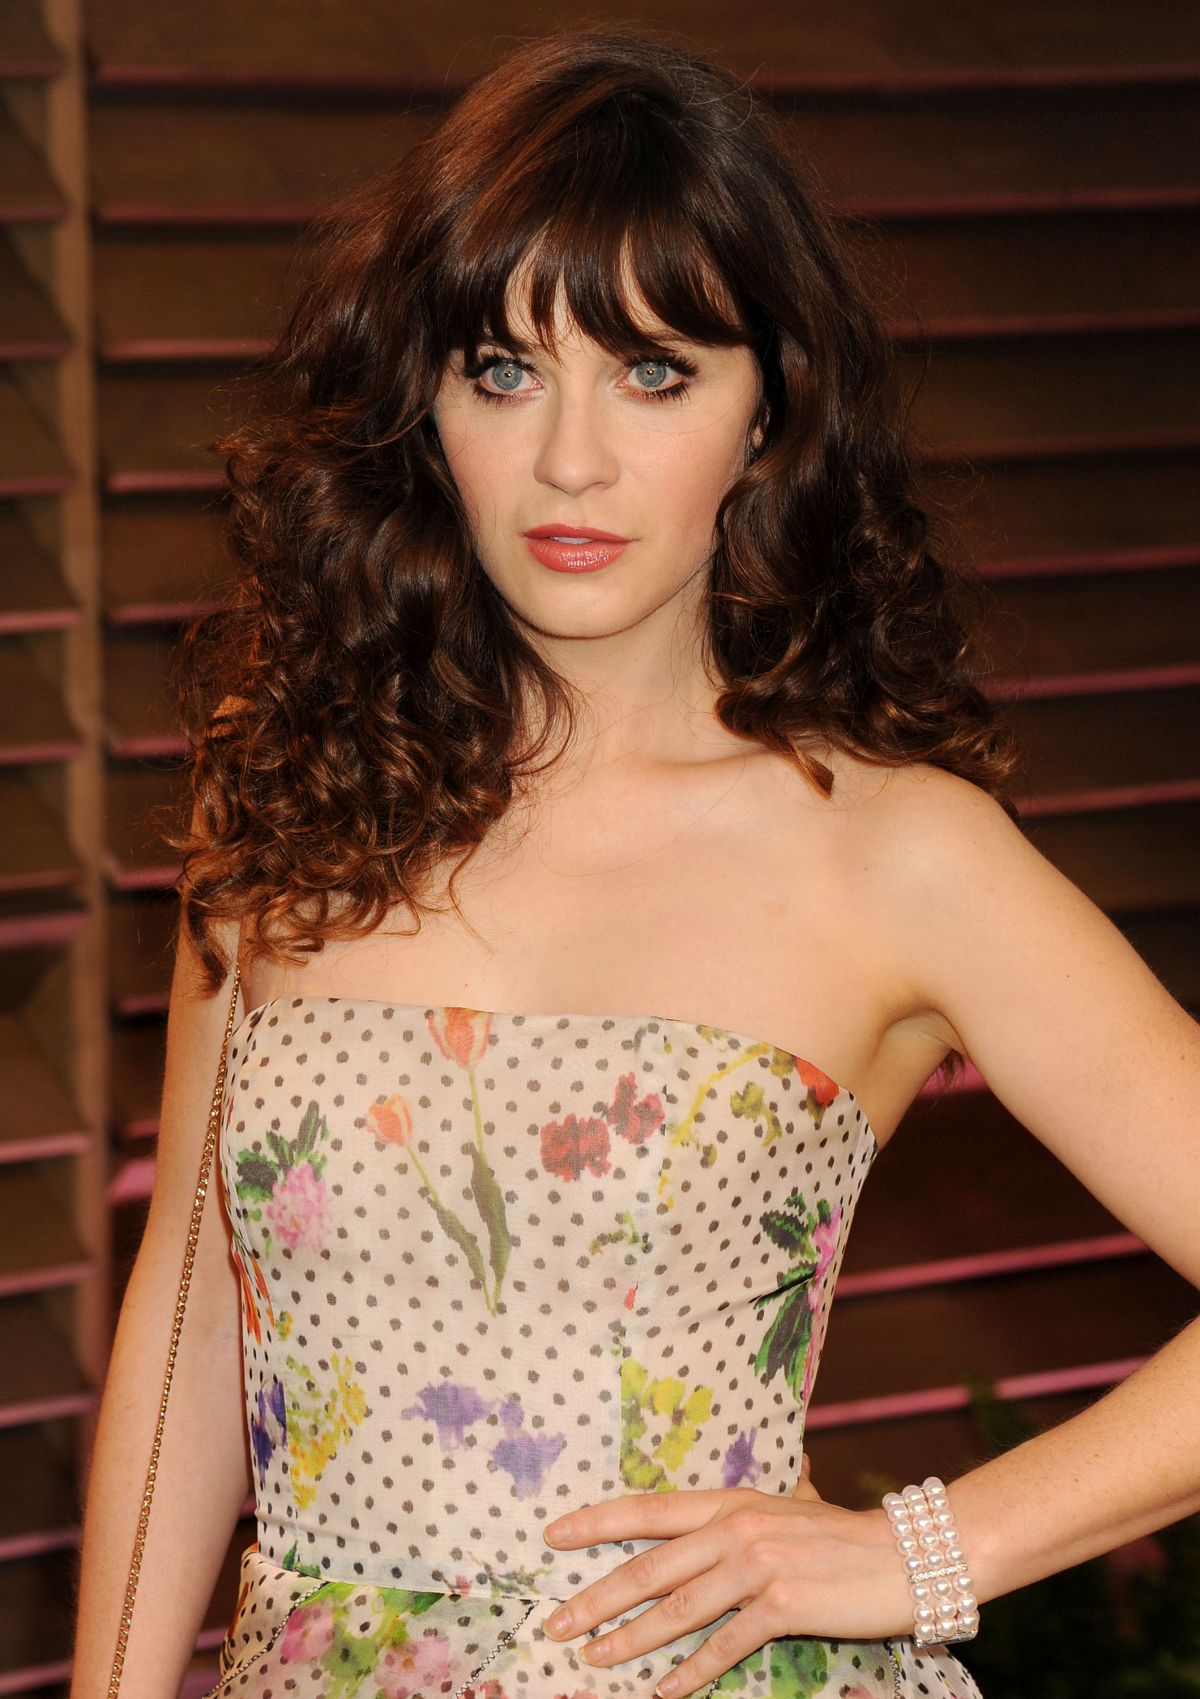 Zooey Deschanel body